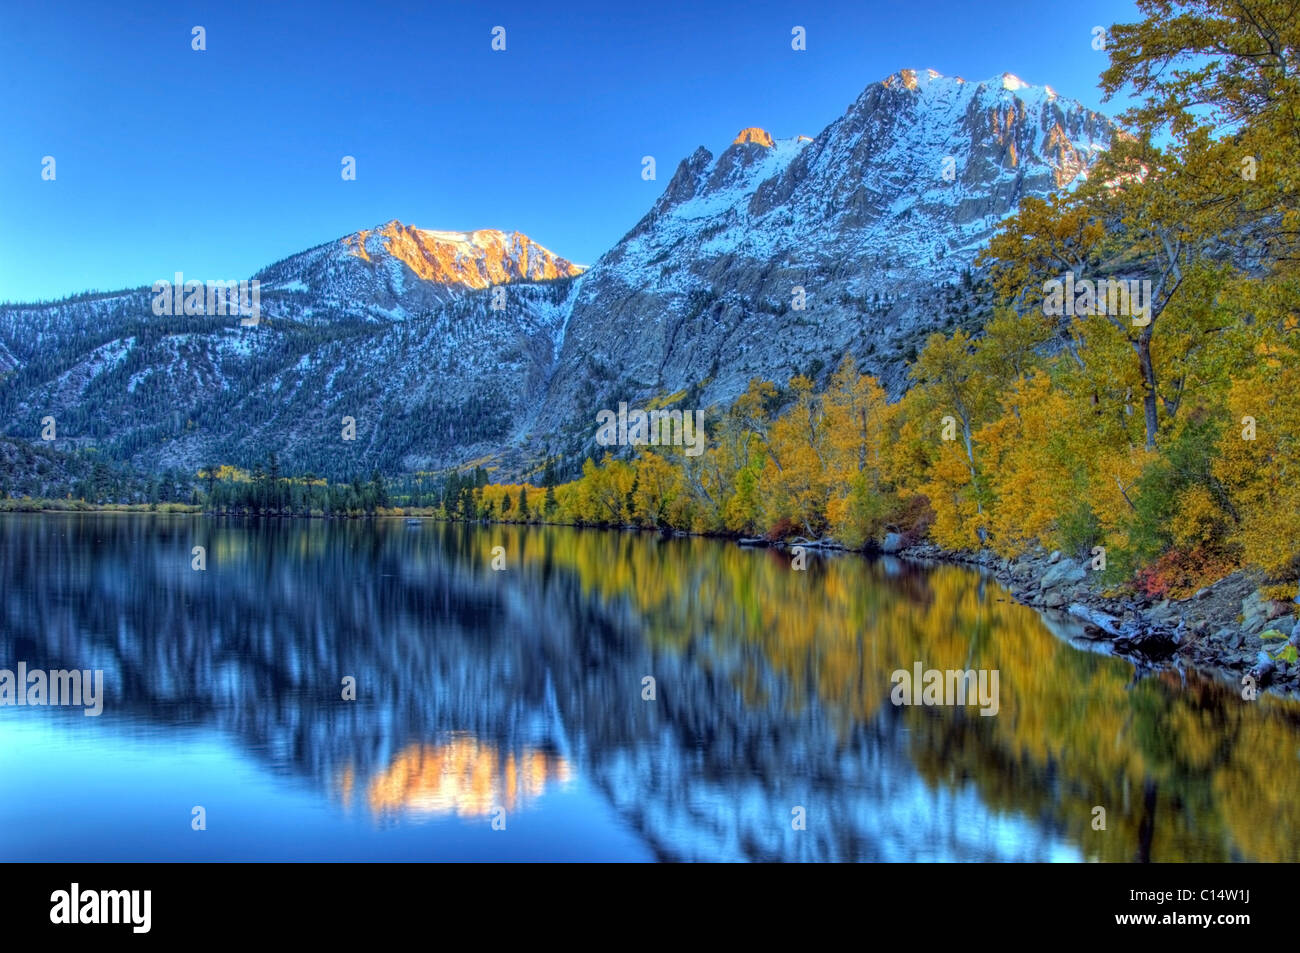 Fall colors and snow capped peaks line Silver Lake in the Eastern Sierra, California. - Stock Image